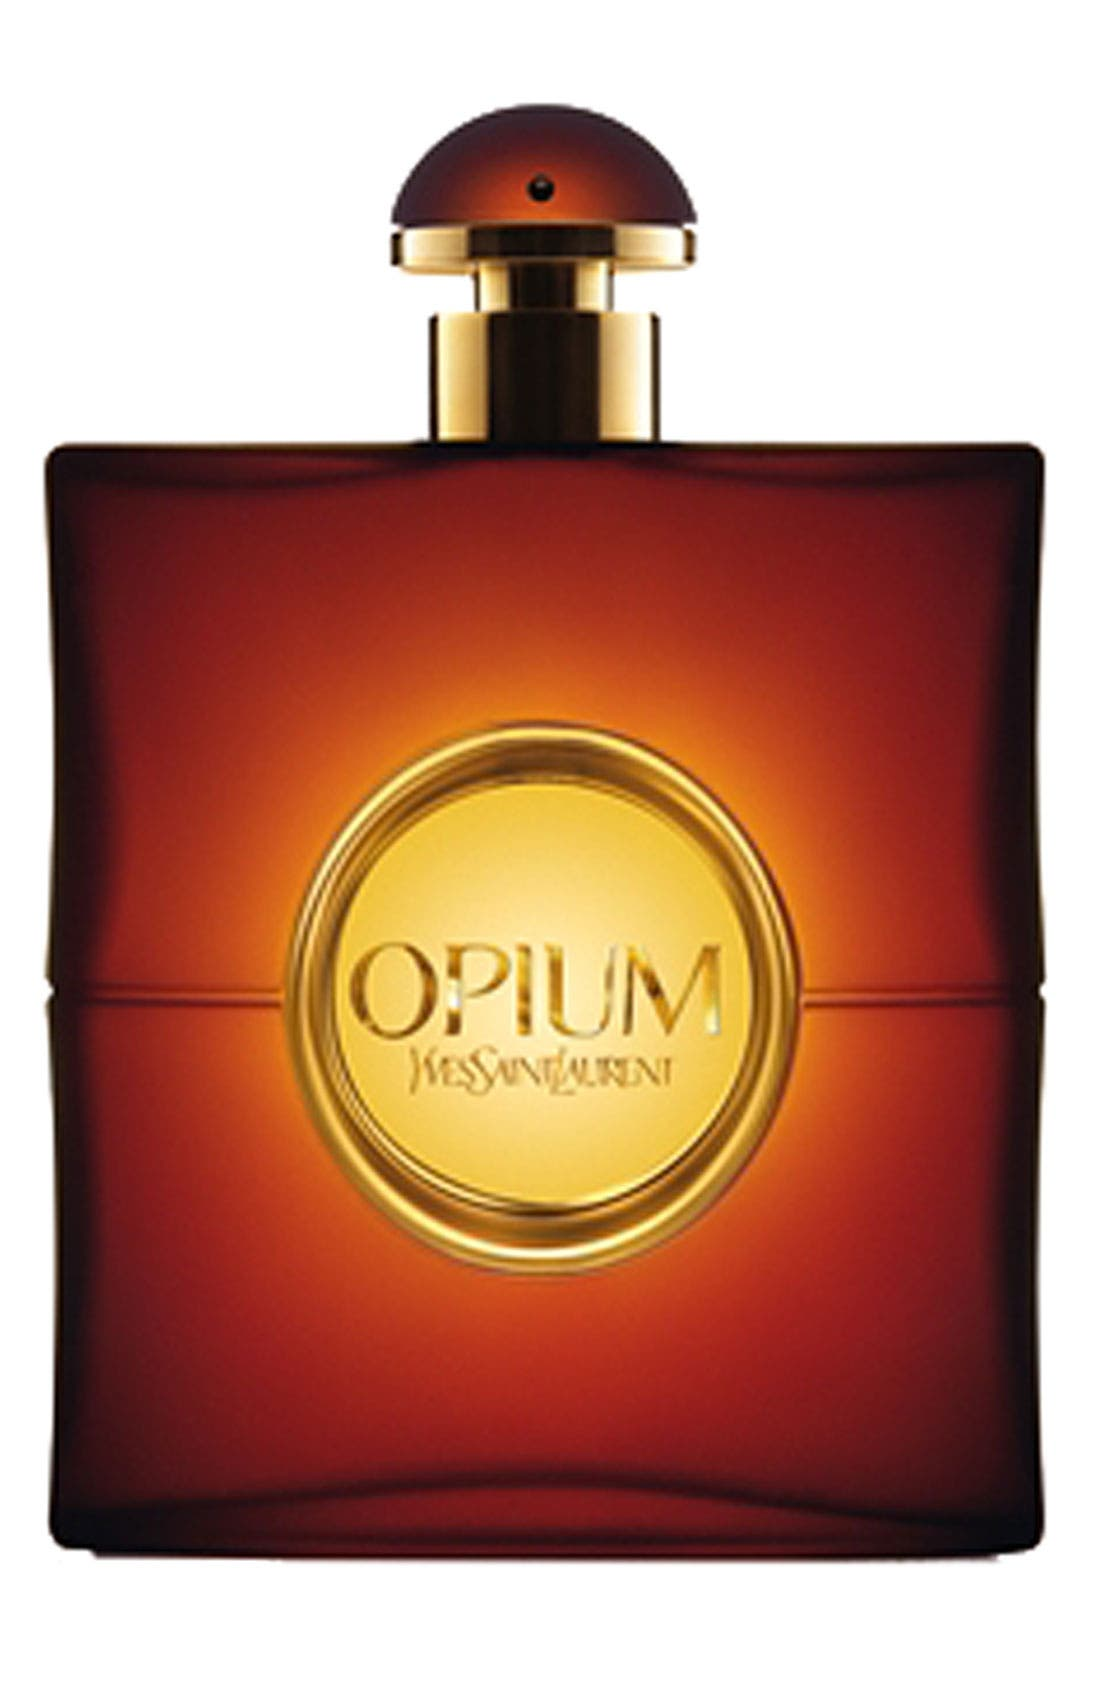 Yves Saint Laurent 'Opium' Eau de Toilette Spray